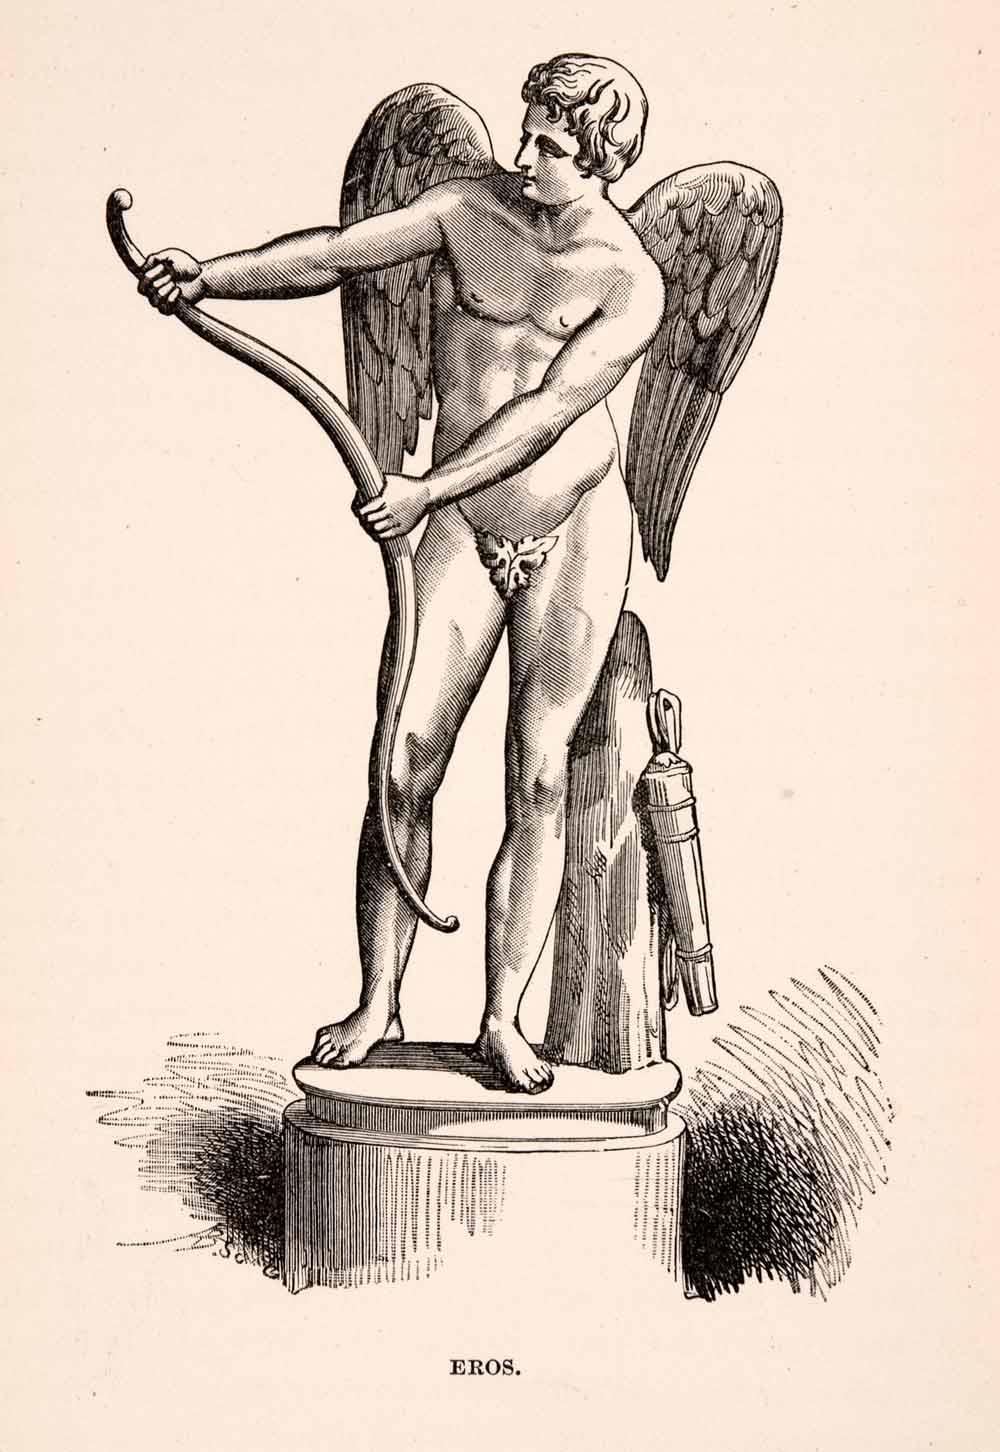 1896 Wood Engraving Eros Rome Italy Mythical Statue Sculpture Nude Bow XGKA1